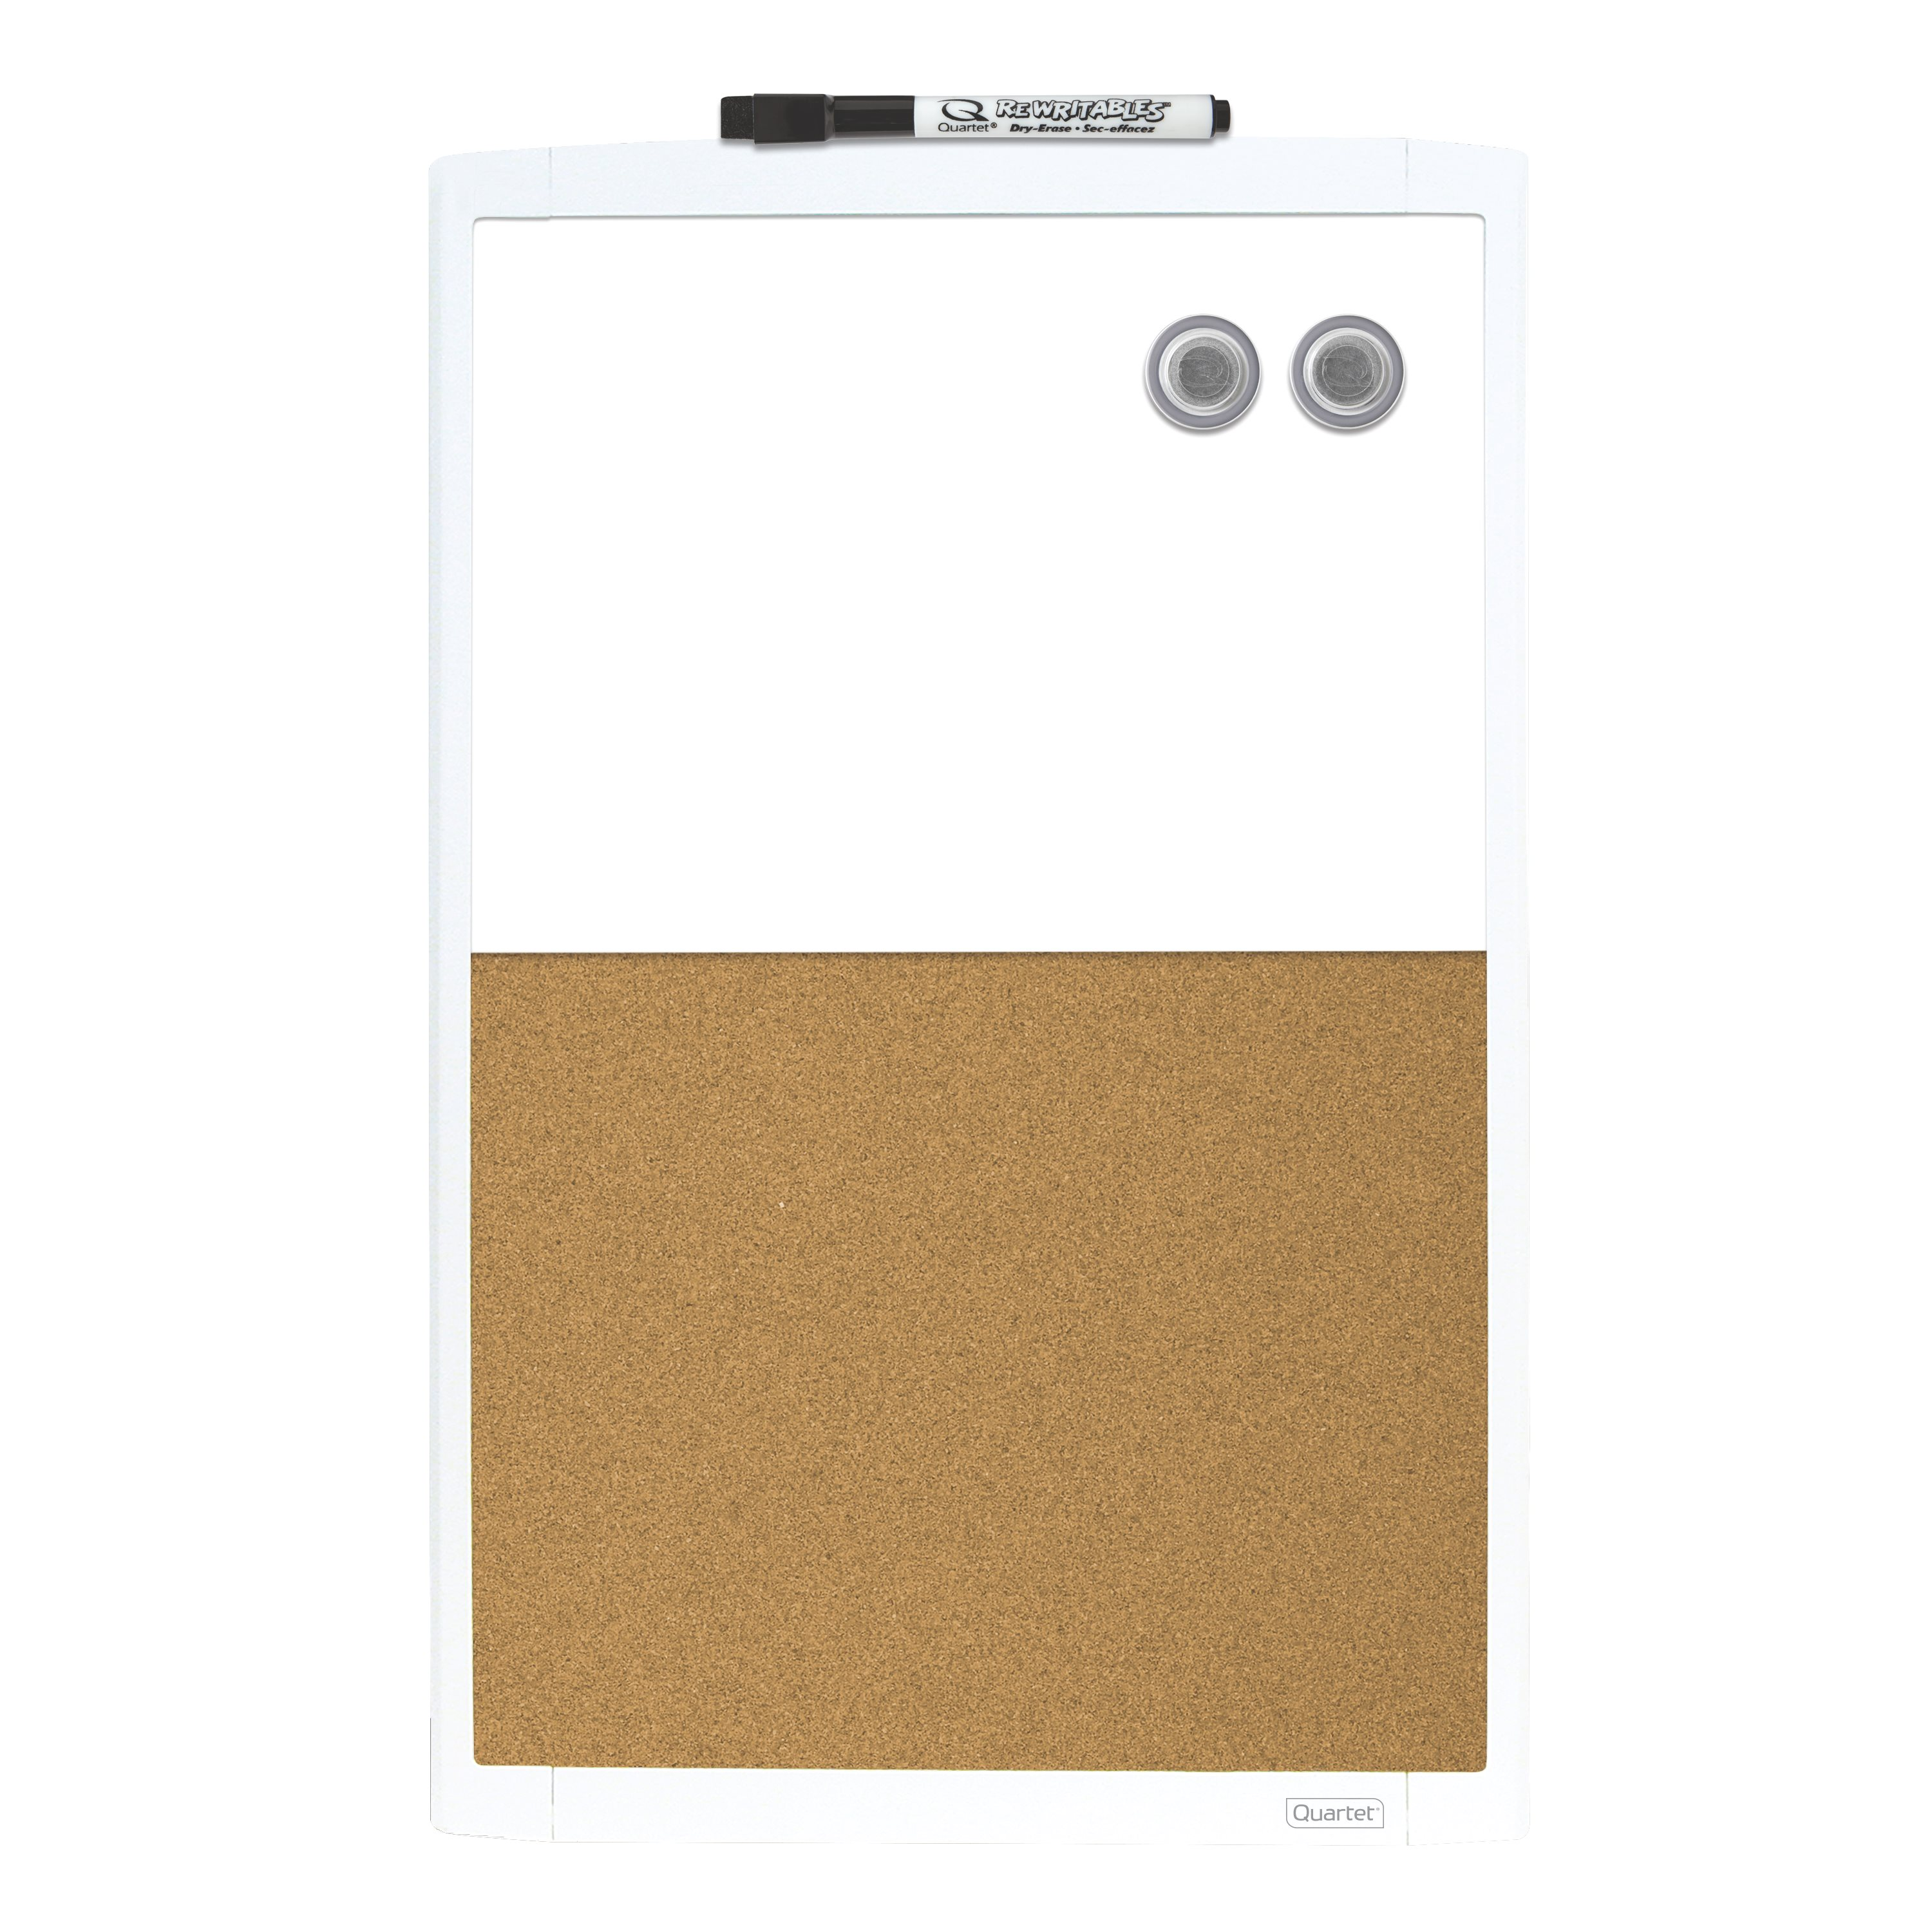 "Quartet Magnetic Combination Board, Cork/Dry-Erase, 11"" x 17"", White Frame (MHOC1117)"